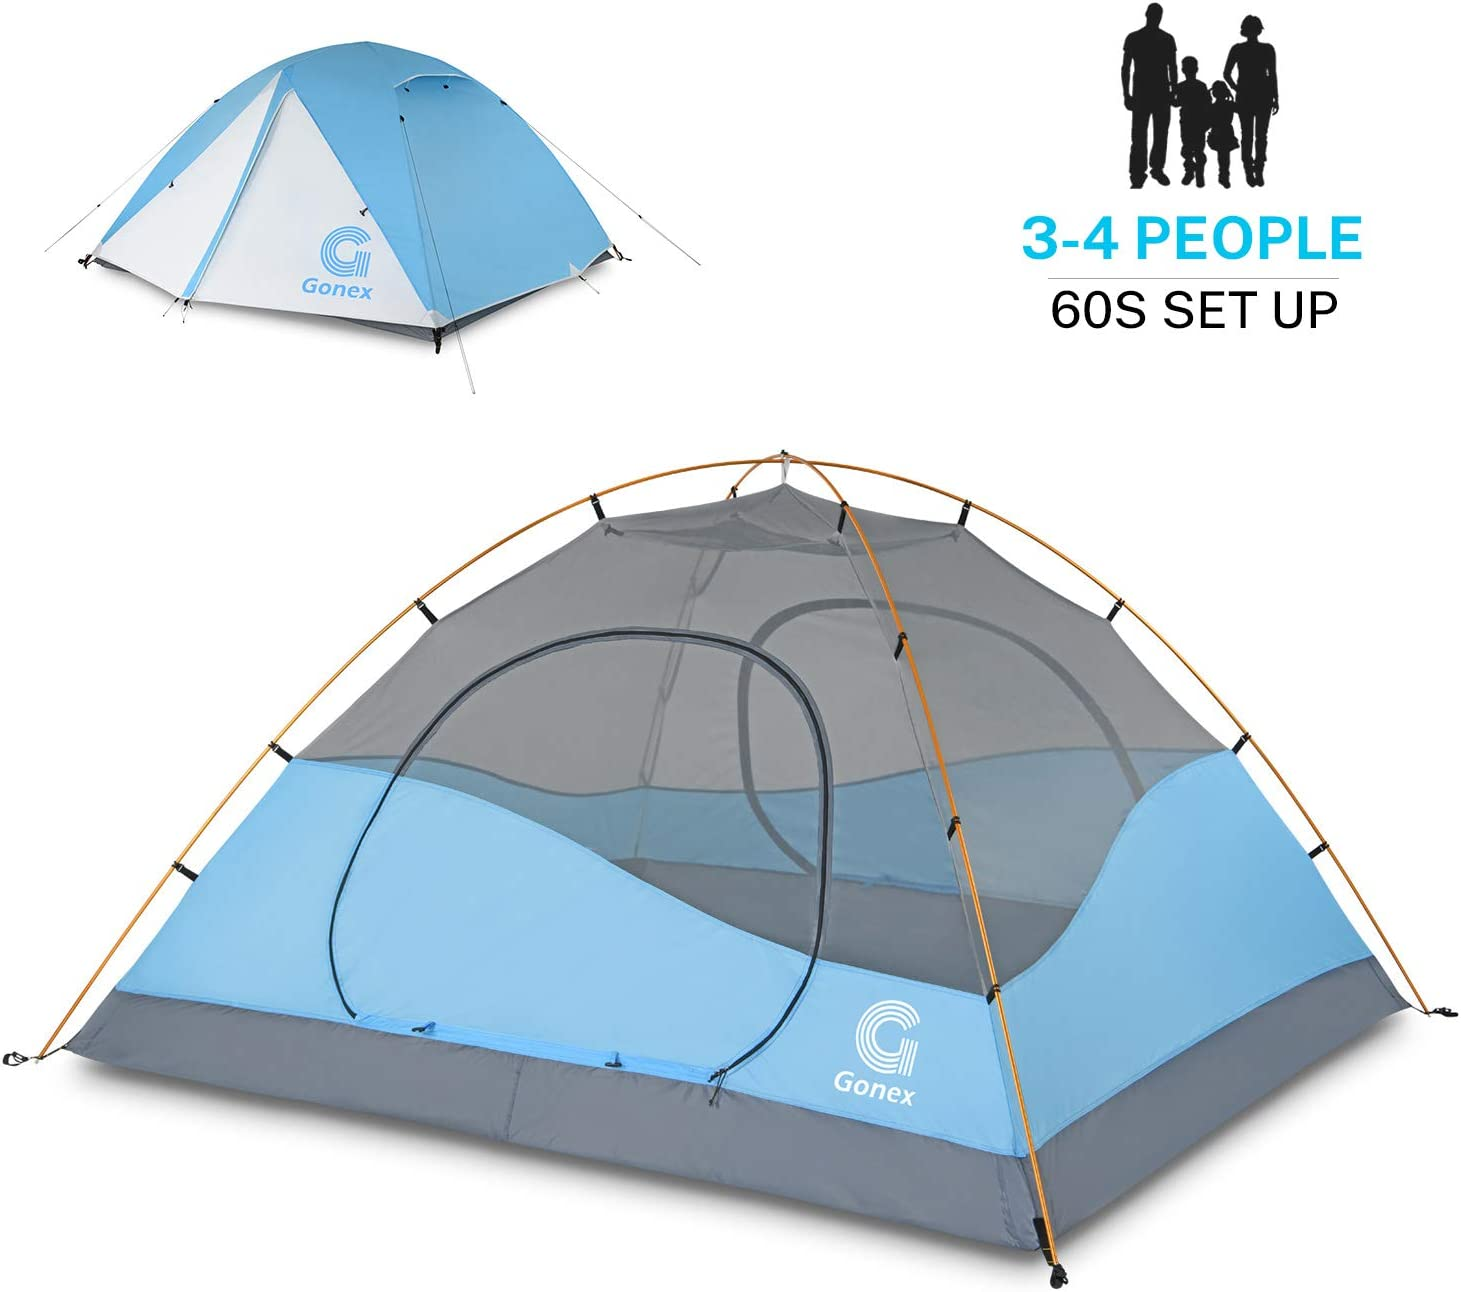 Gonex Camping Tent 3 4 People Dome Tent Windproof & Waterproof Camping Tent for 3 Seasons for Camping Hiking Backpacking & Mountaineering, Easy to Set